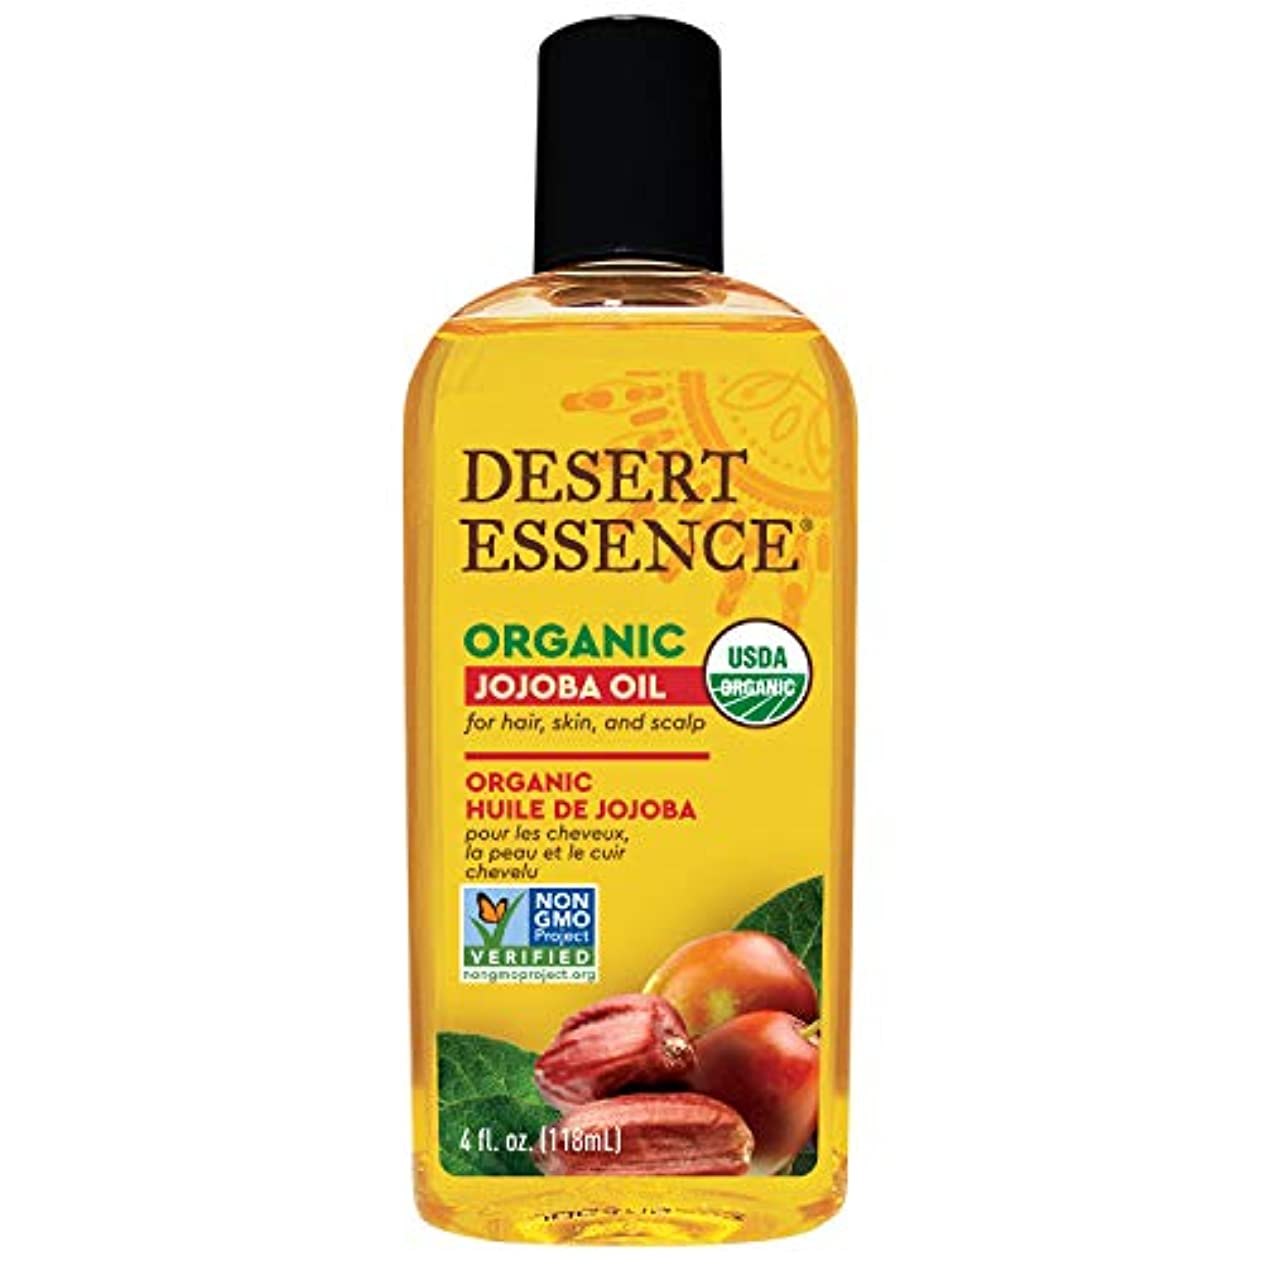 深遠眠り代替Desert Essence Organic Jojoba Oil 120 ml (並行輸入品)